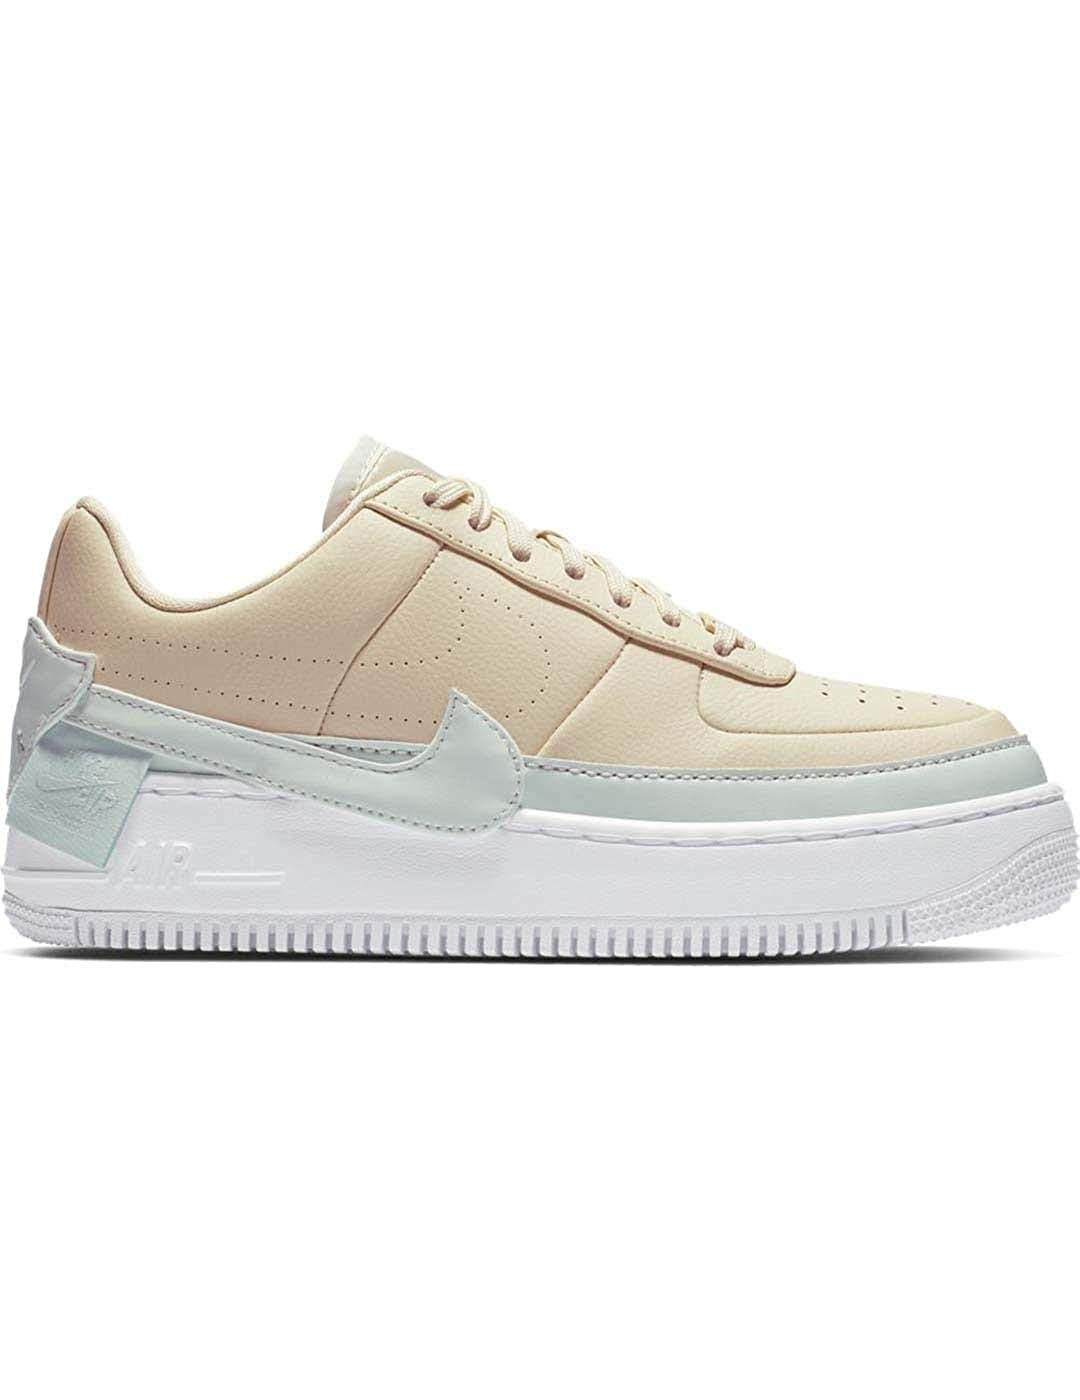 2fa8343246 Amazon.com | Nike Women's Air Force 1 Jester XX | Shoes